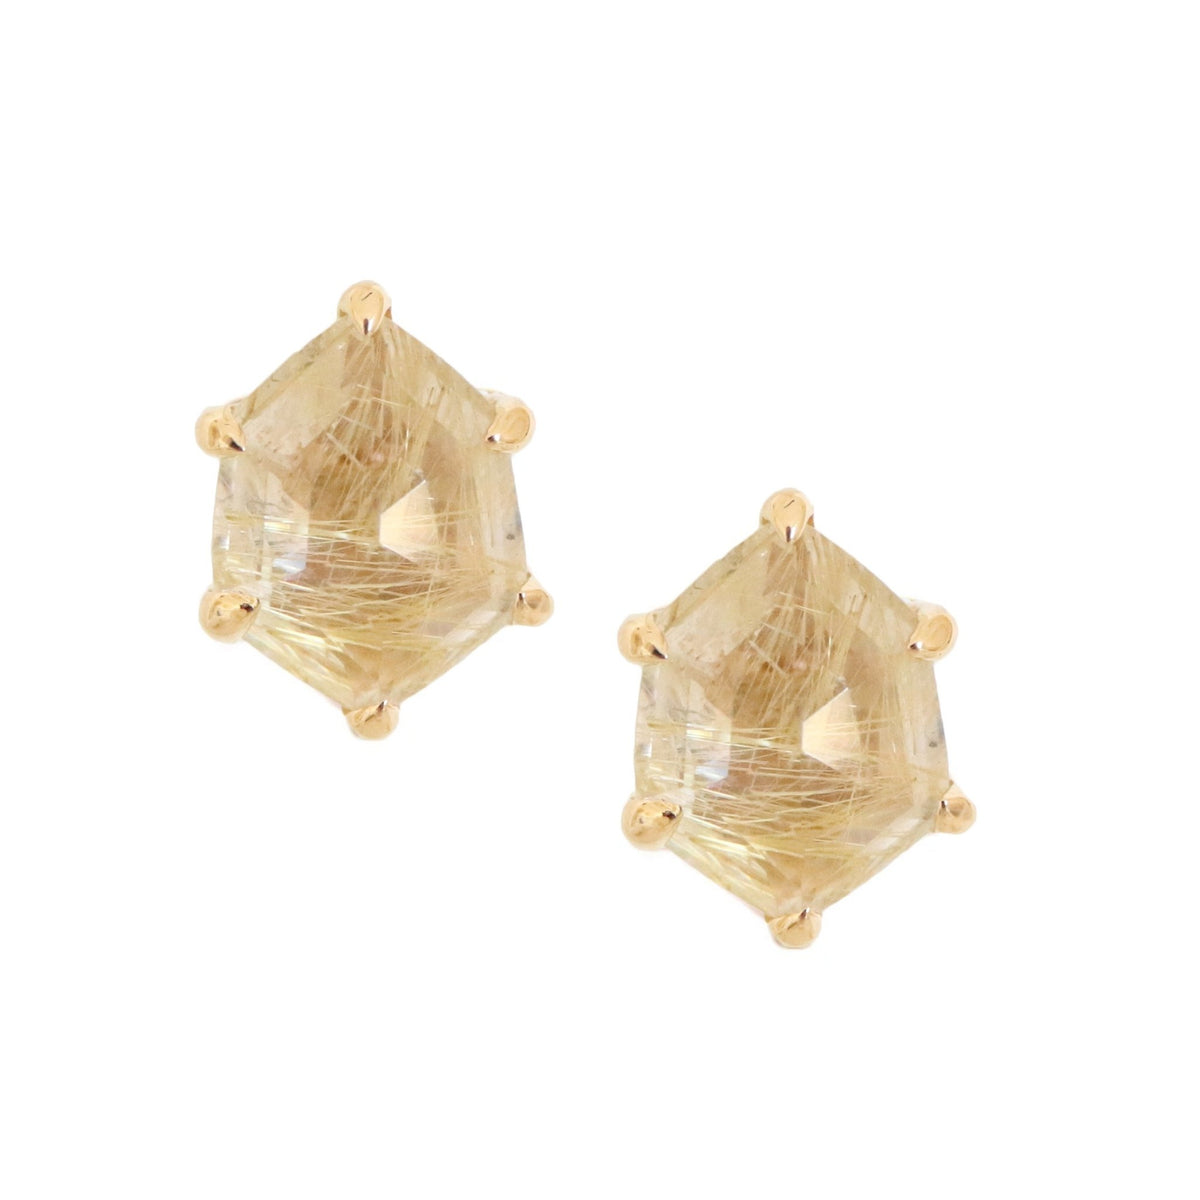 MINI HONOUR SHIELD STUD EARRINGS - GOLDEN RUTILE QUARTZ & GOLD - SO PRETTY CARA COTTER